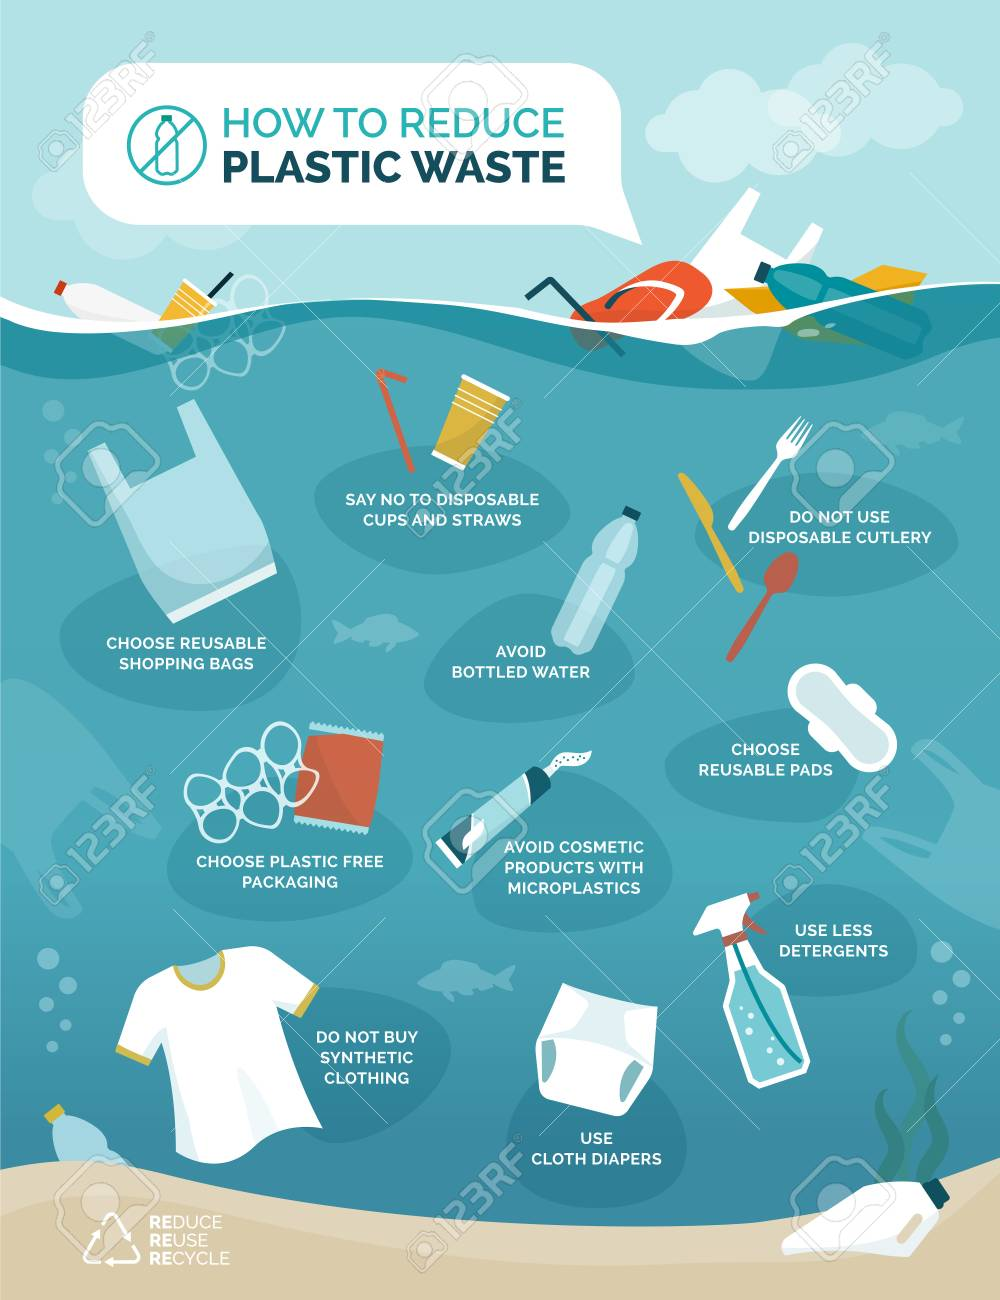 How to reduce plastic pollution in our oceans infographic with floating objects polluting water, sustainability and environmental care concept - 121012992